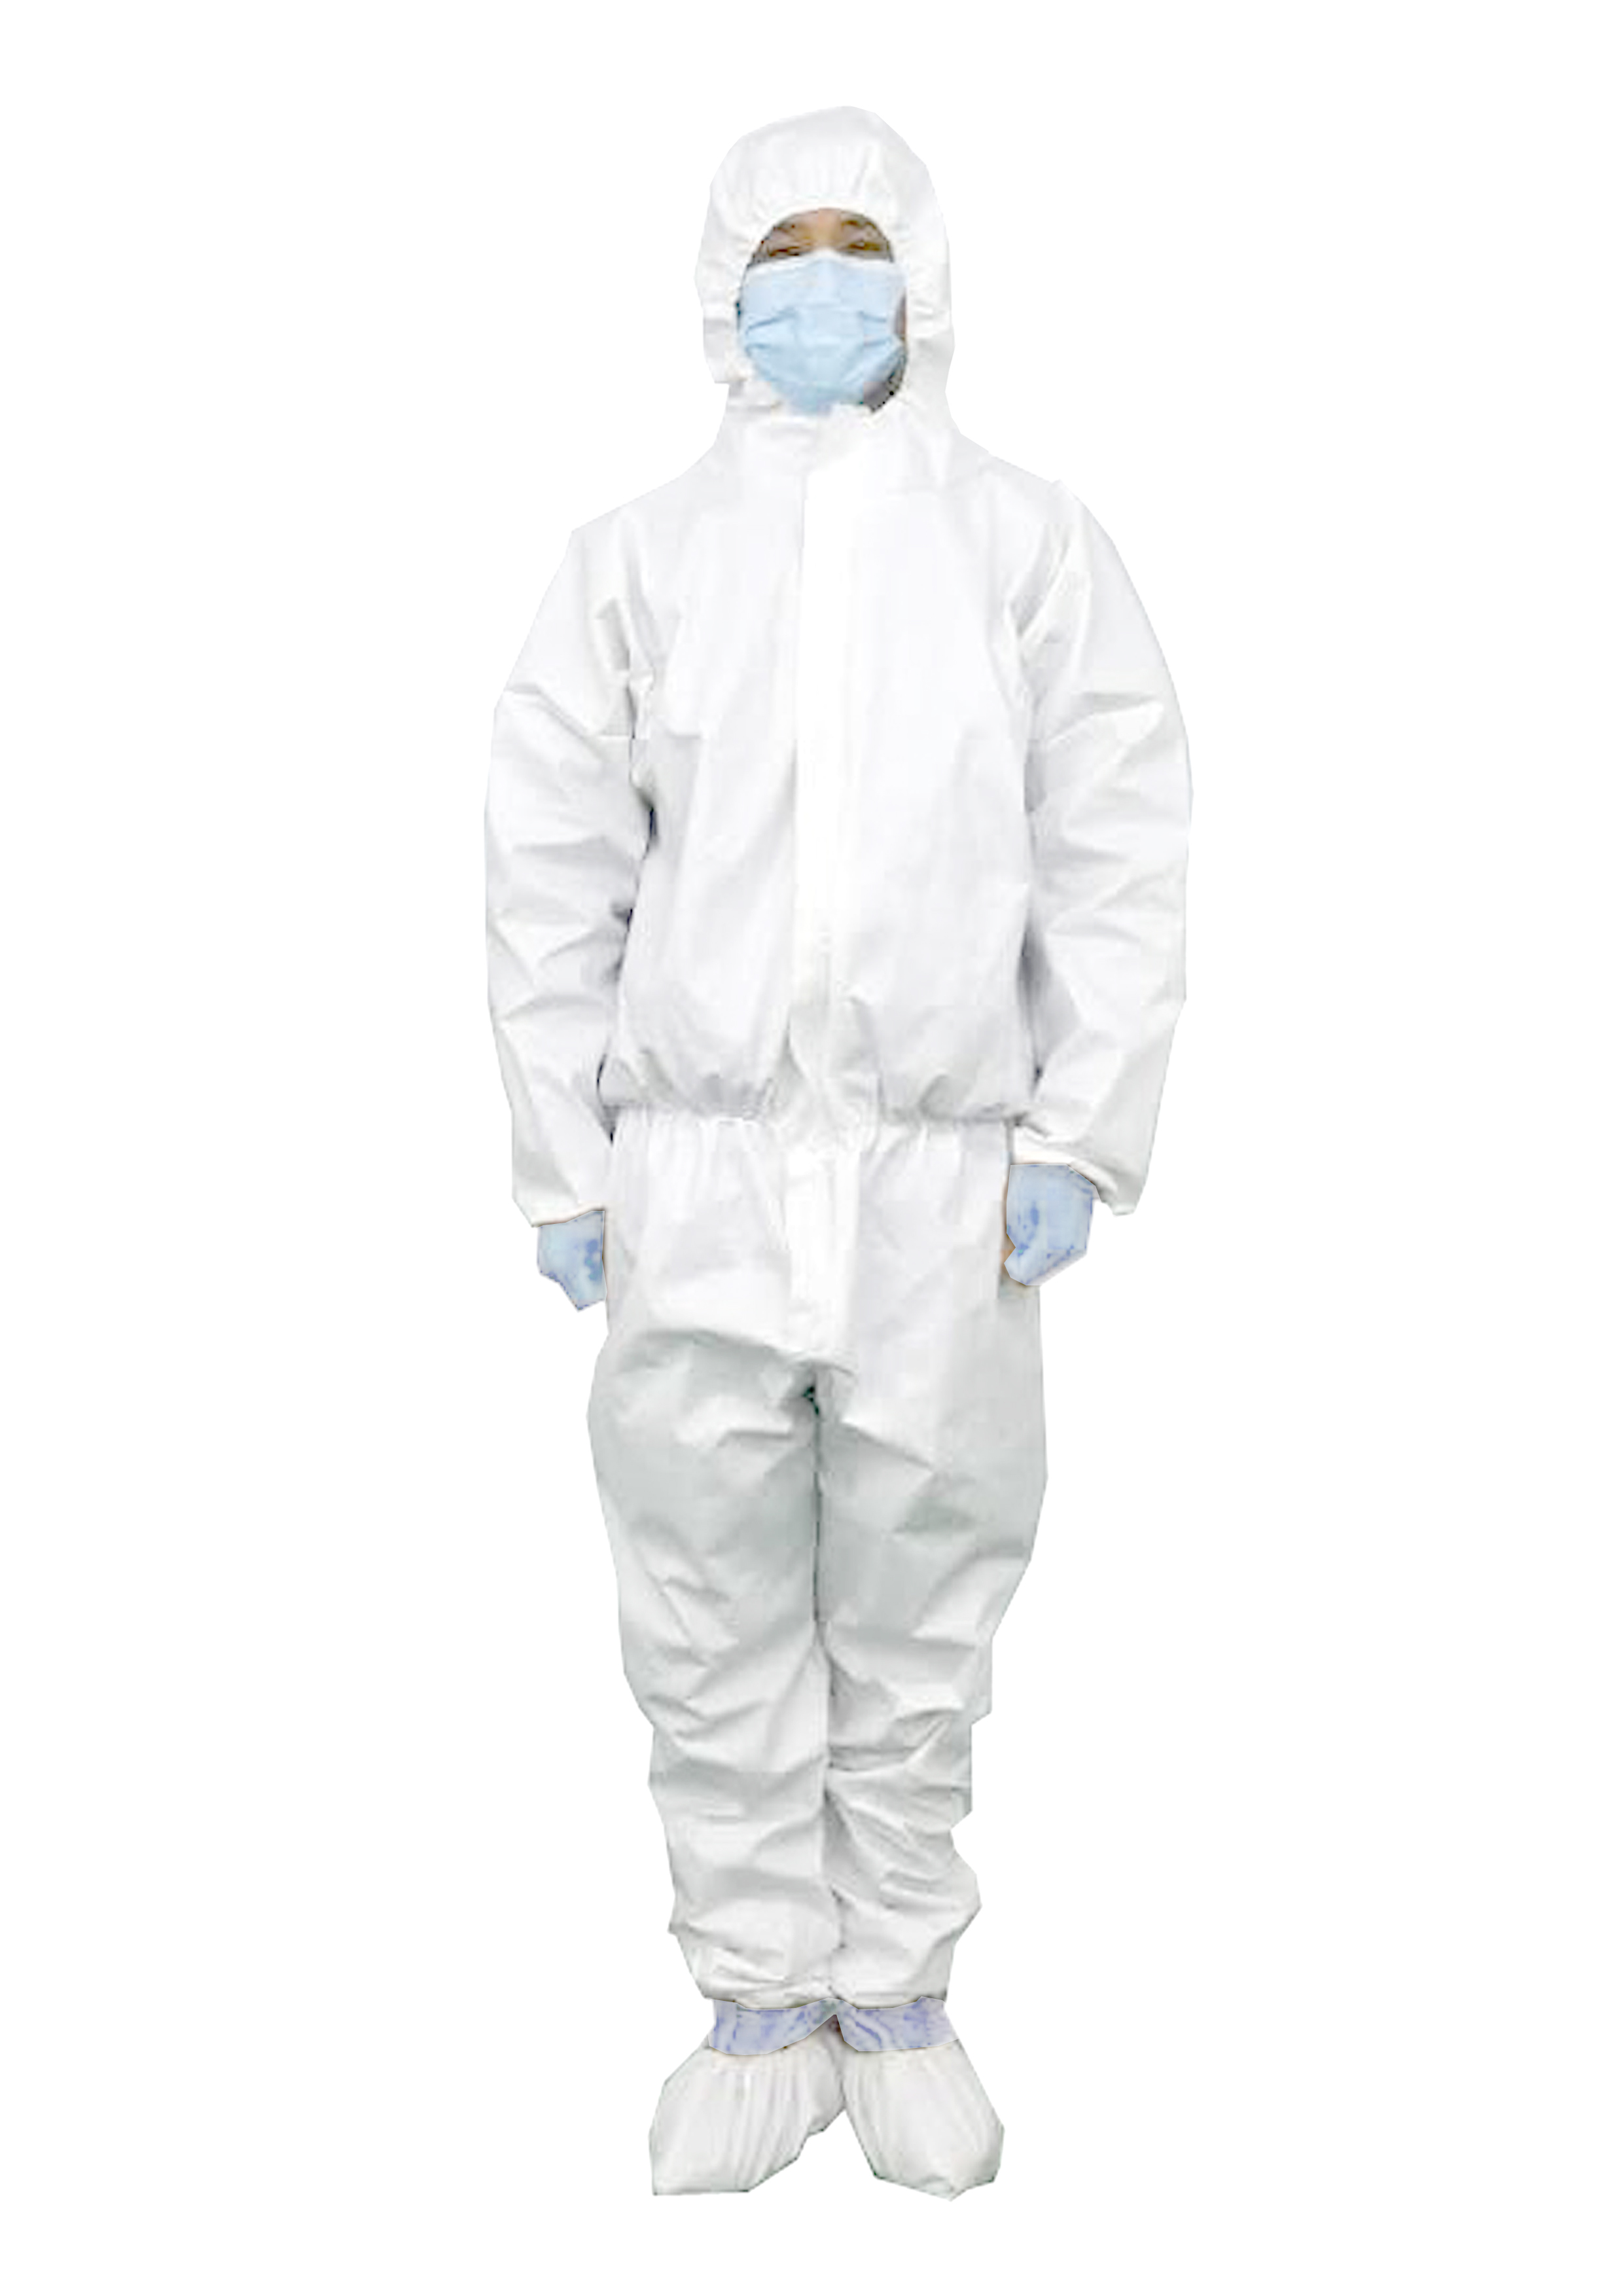 PP/PE Waterproof Liquid Resistance Antibacterial Non-woven Fabric Microporous Safety Protective Apparel Medical Coverall